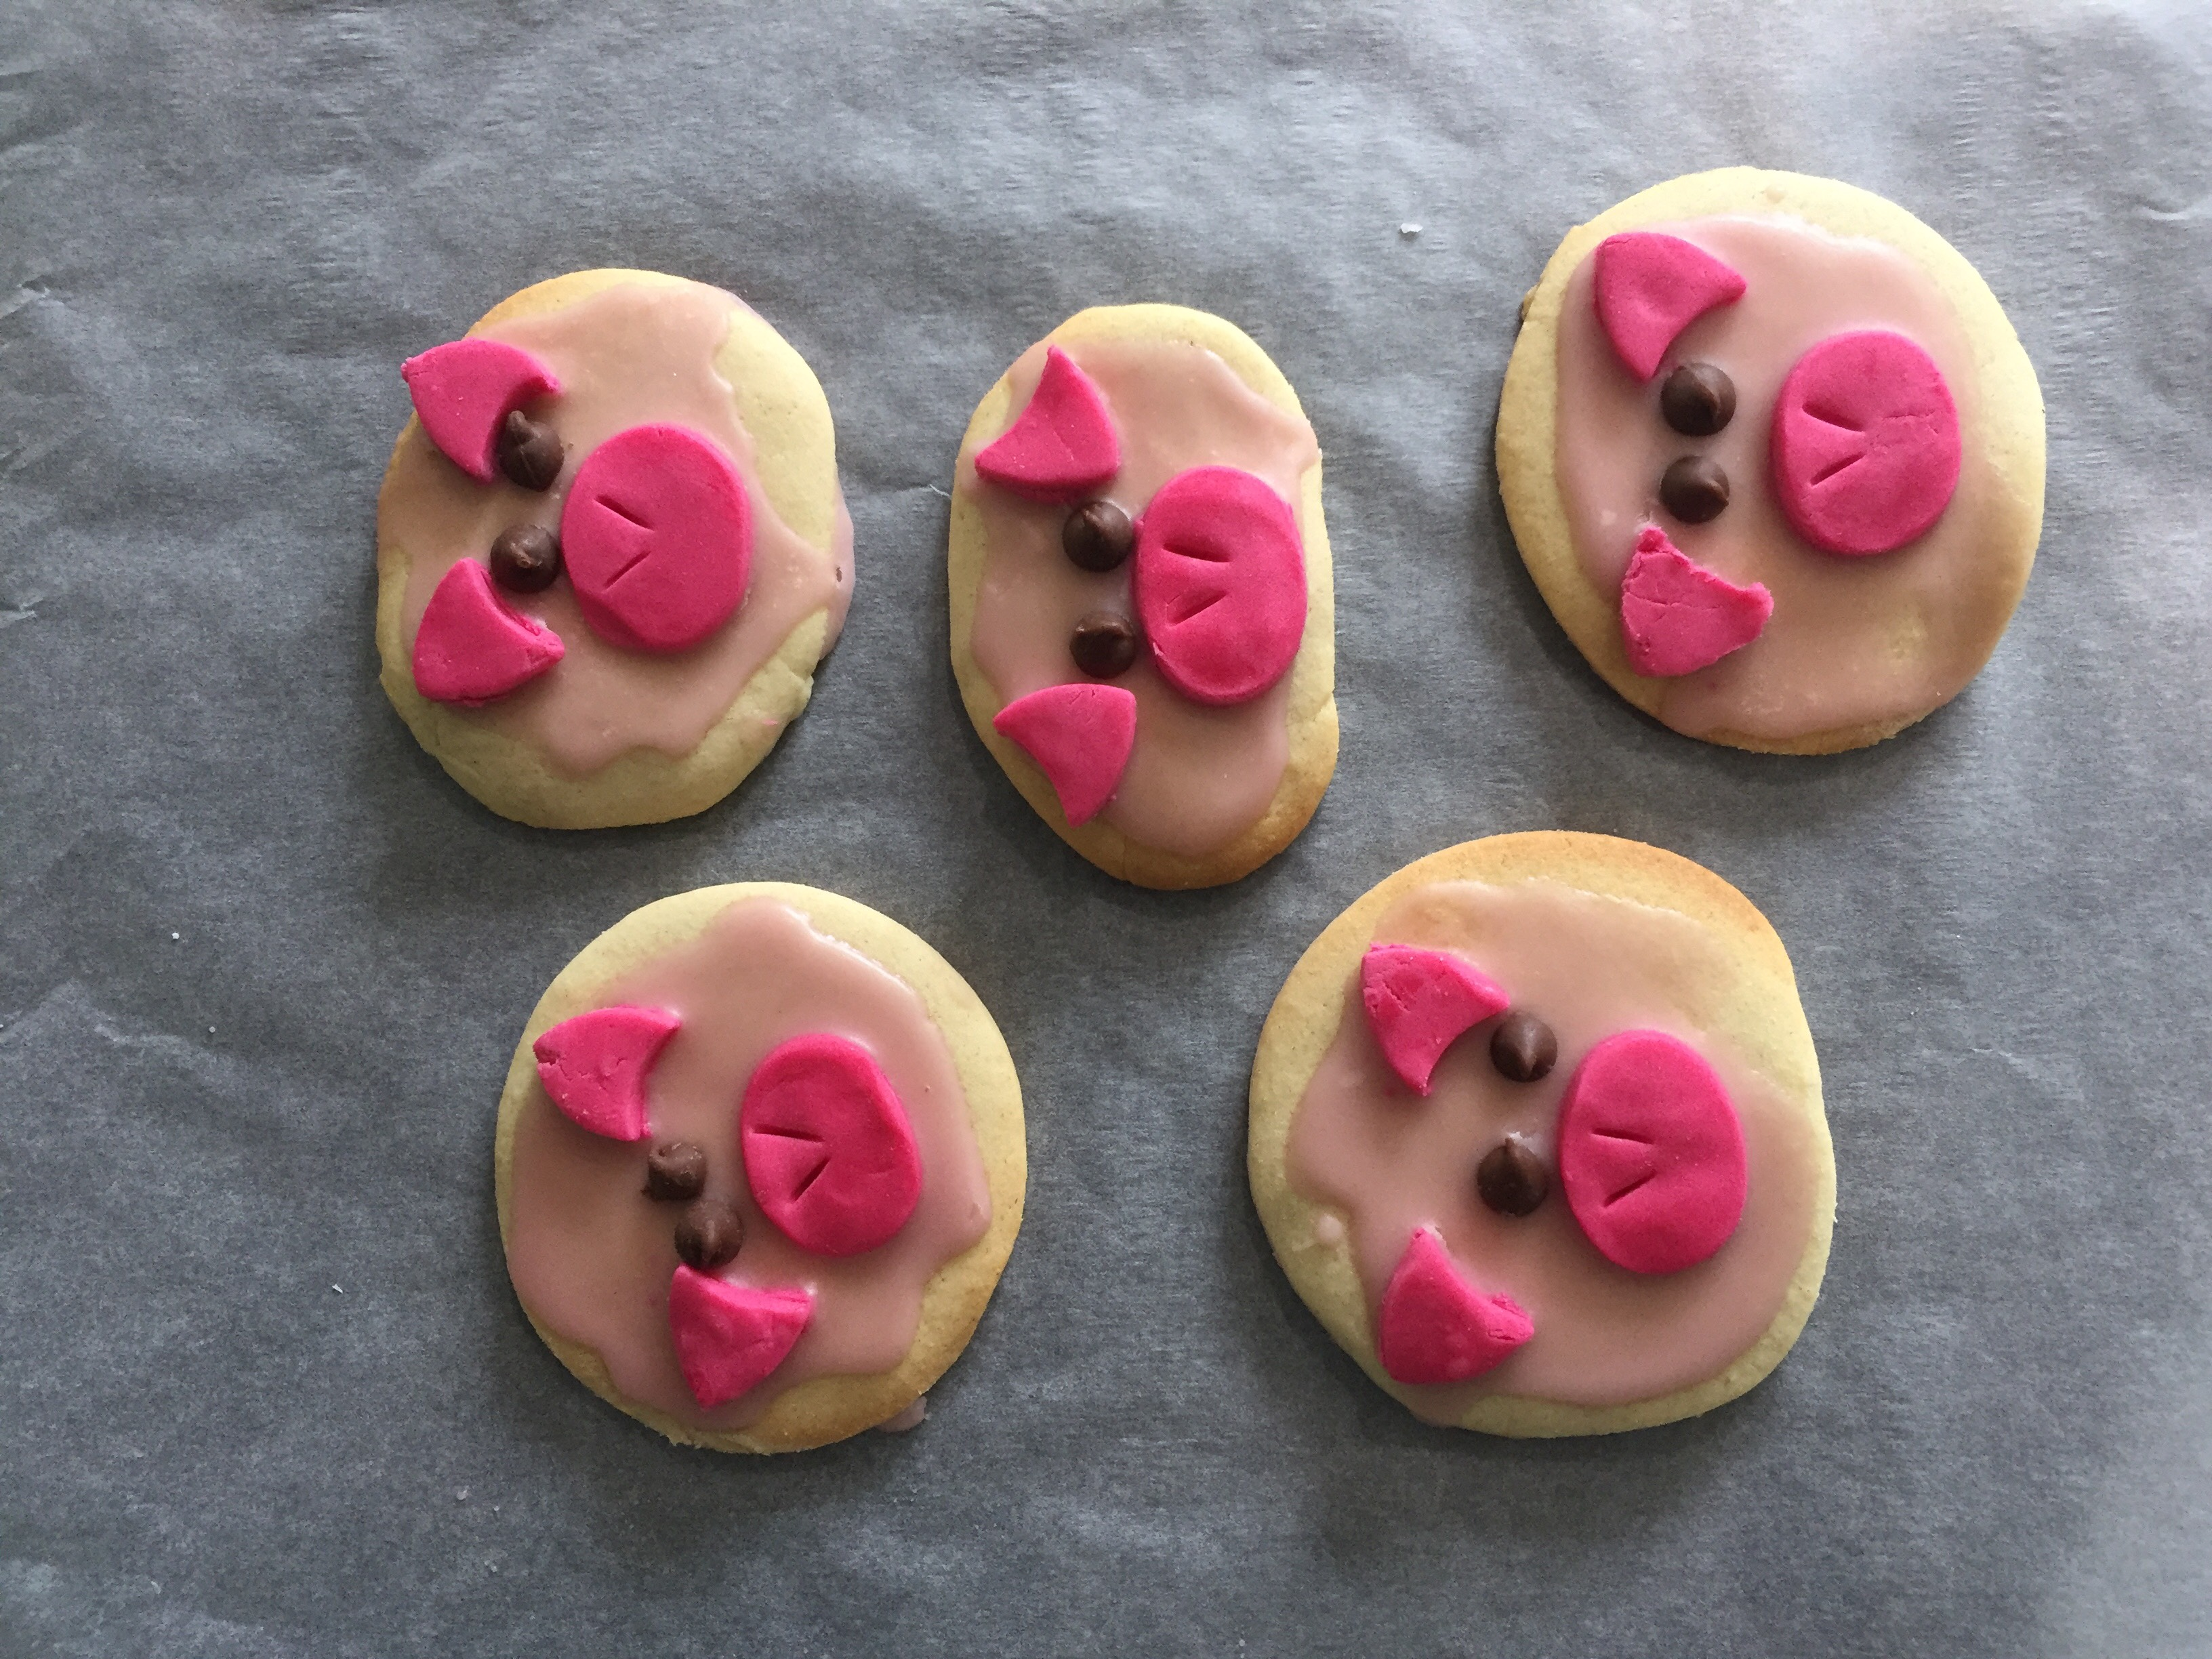 piggy biscuits